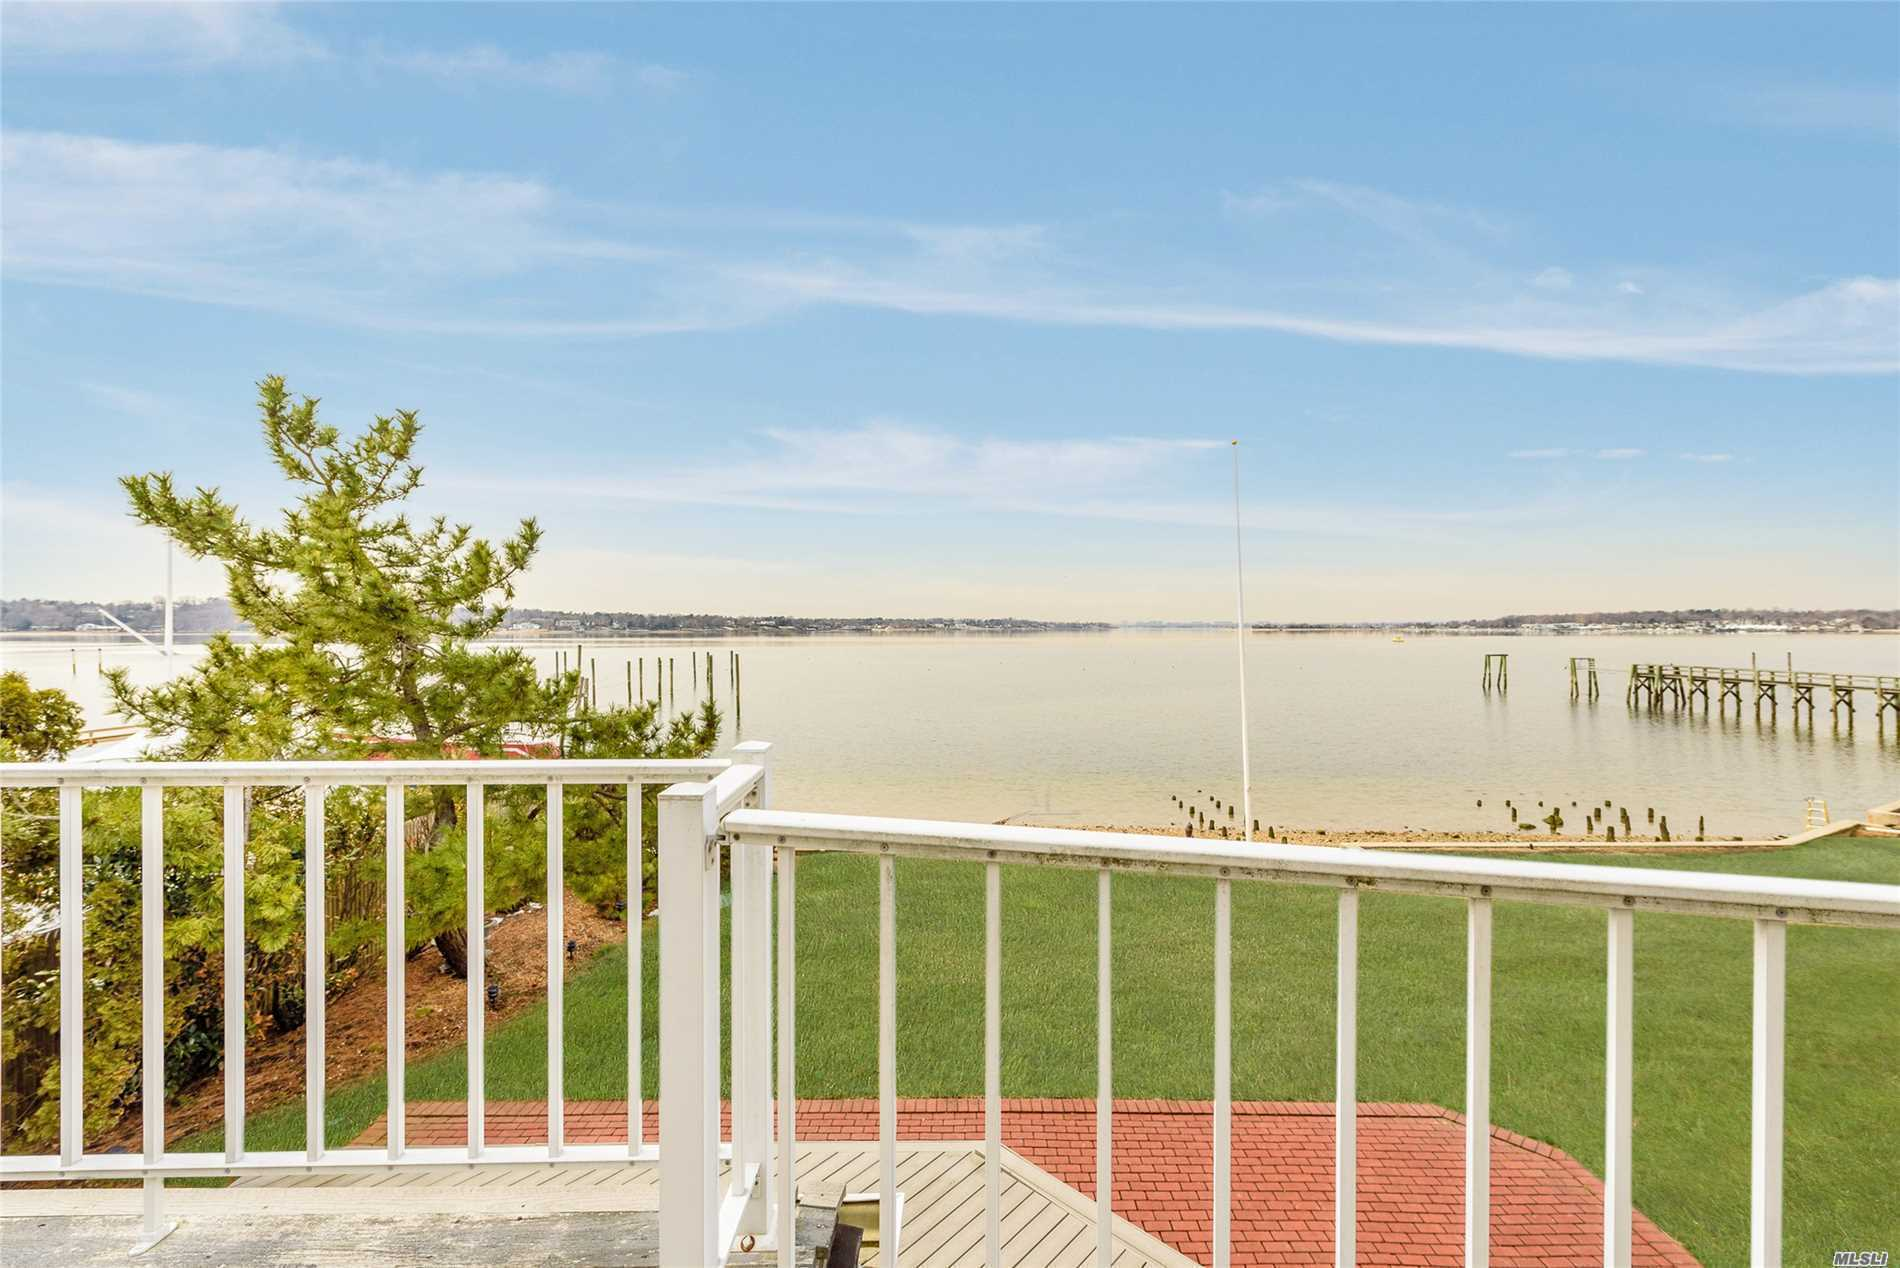 Spectacular Remote Waterfront in Port Washington For $2, 499, 000. Situated on a Private Road in a Cul De Sac, this Home has Jaw-Dropping Views of Manhasset Bay. Abundant Amounts of Natural Light Throughout Capitalize On Breathtaking Water Views. The 1st Floor Offers Multiple Living Spaces Designed For Intimate Gatherings & Entertaining. The Master & Junior Master Suites Include Sliding Doors To Your Own Private Waterfront Deck That Will Provide Spectacular Sunrises and Sunsets Year Round.